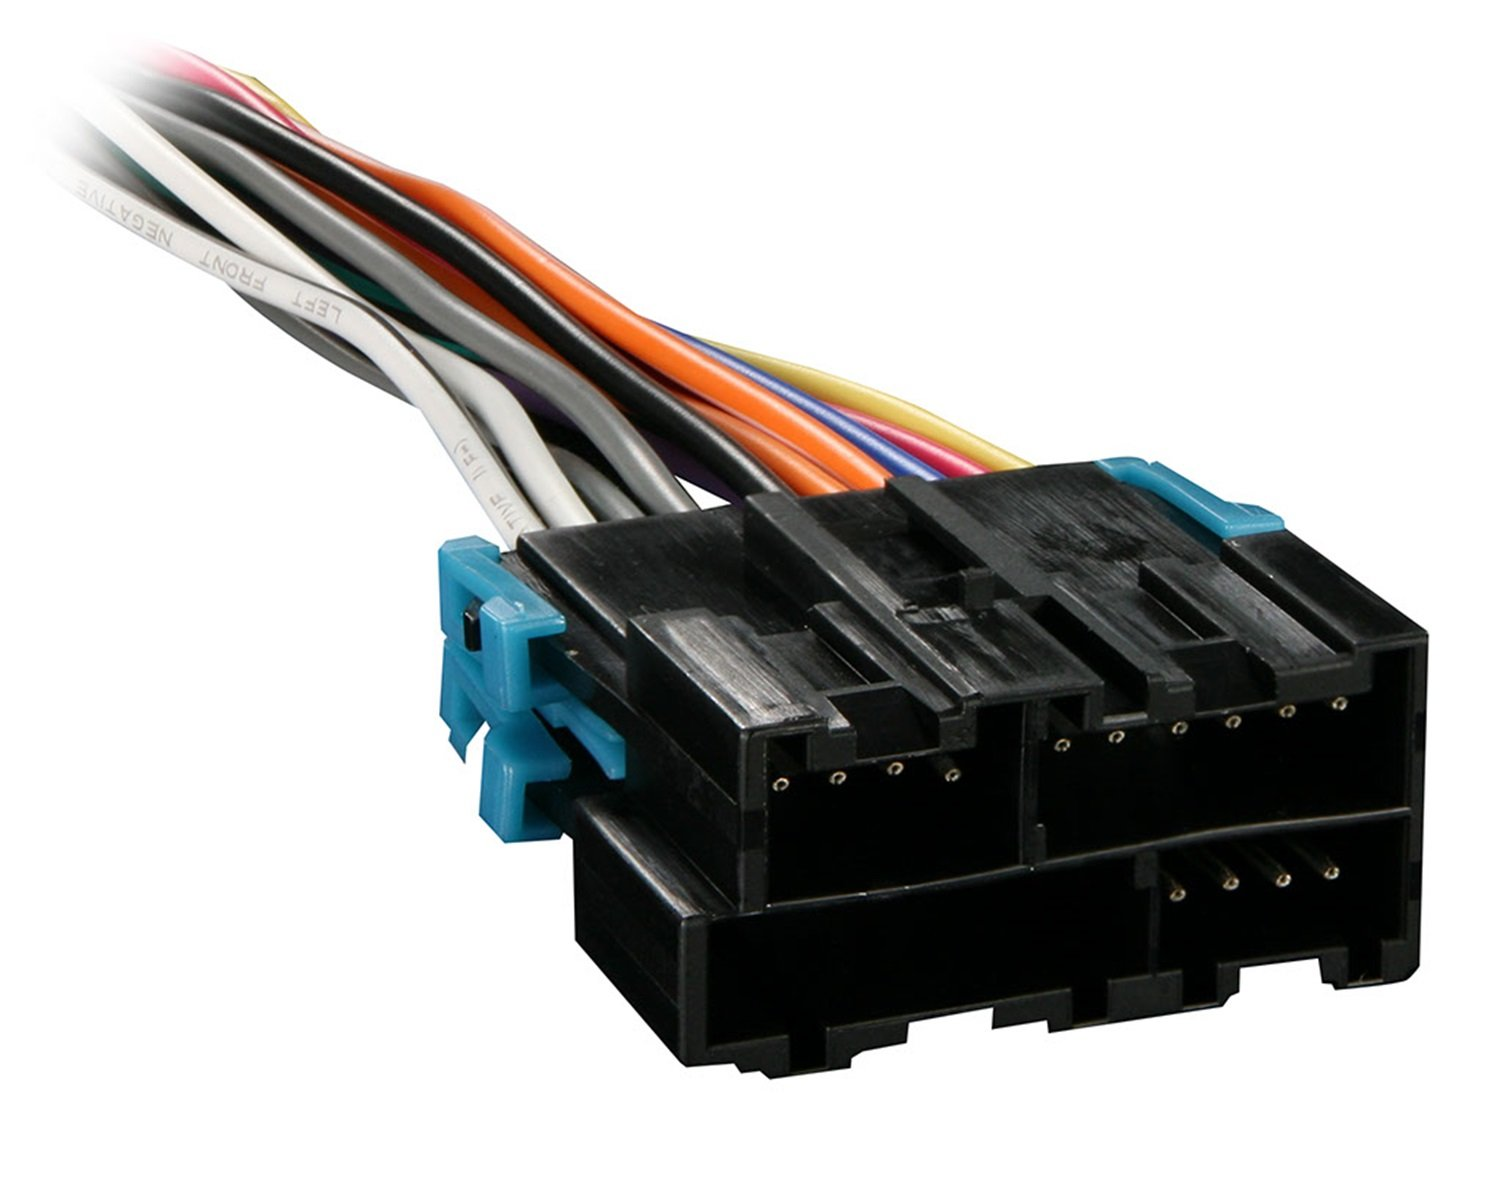 61 CwjZt1hL._SL1500_ radio wiring harnesses amazon com snap on wire harness adapter at fashall.co